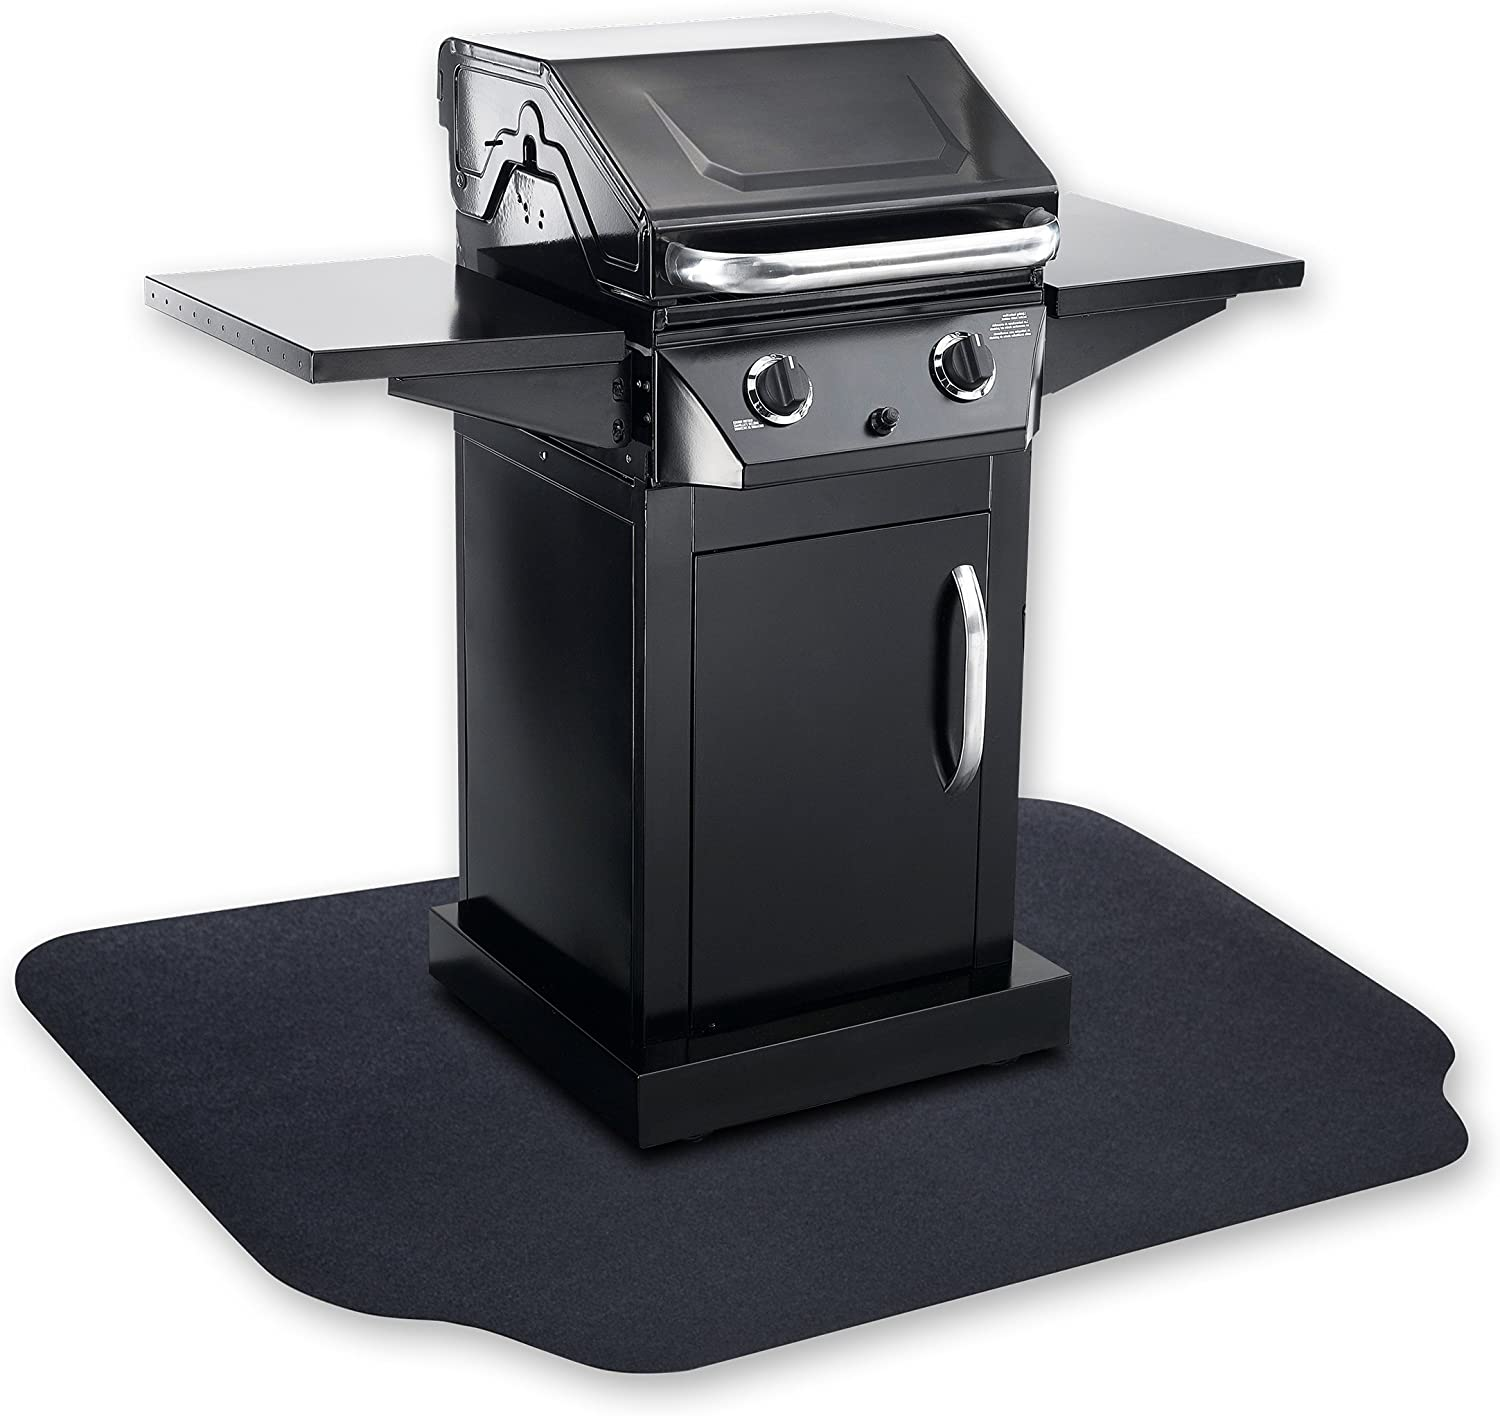 Amazon Com Grilltex Under The Grill Protective Deck And Patio Mat 36 X 50 Inches Garden Outdoor